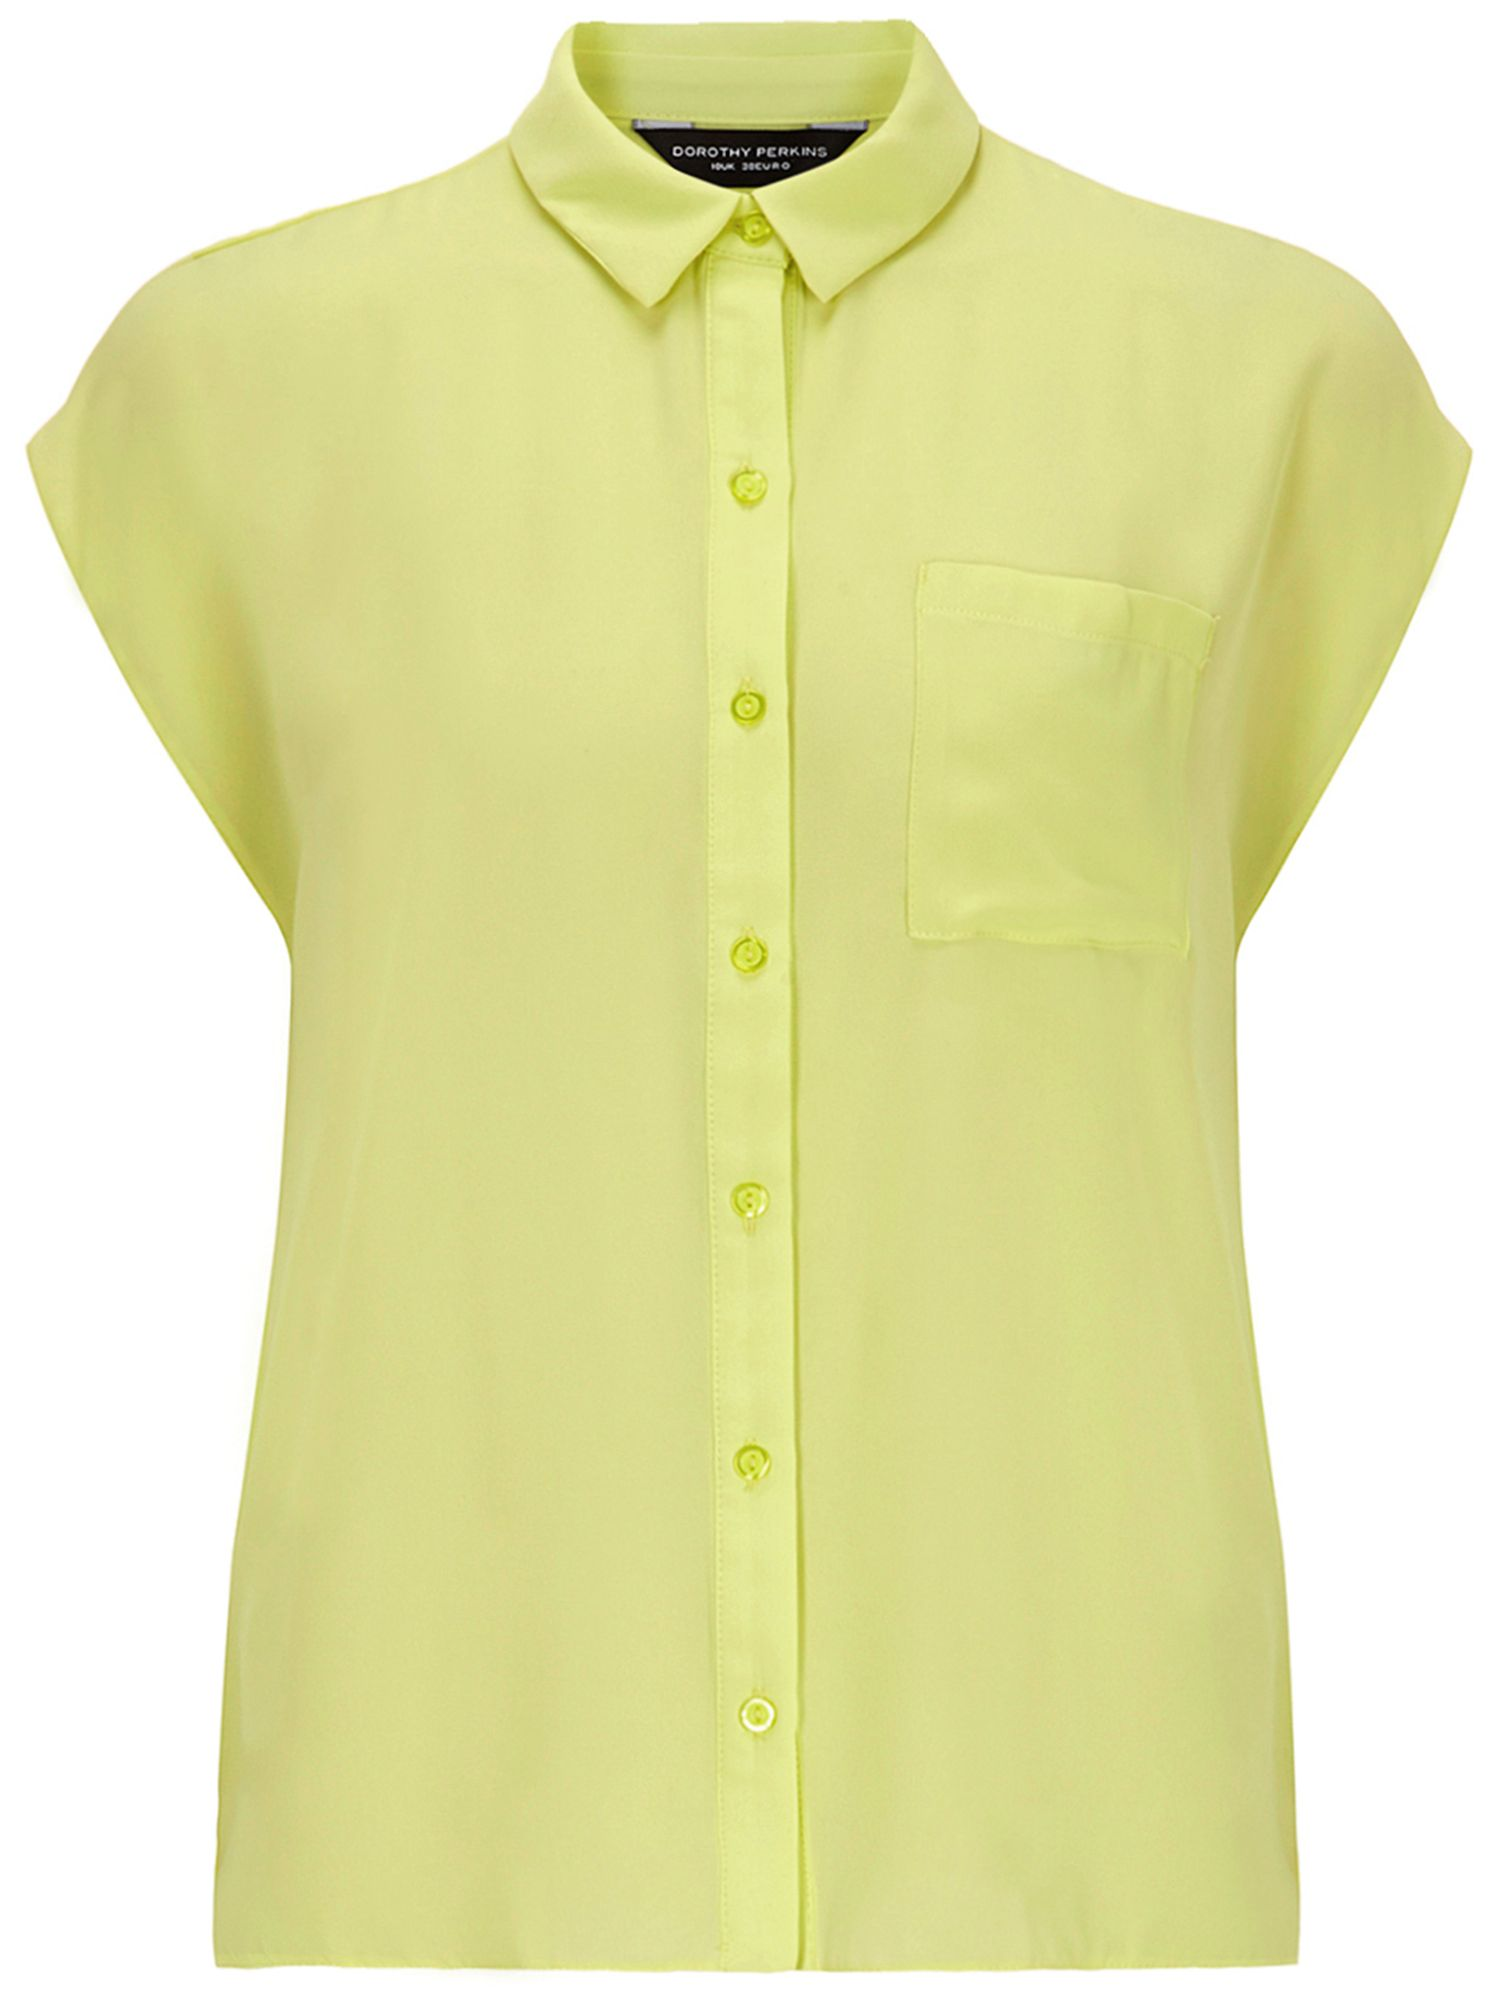 Boxy pocket sleeveless shirt